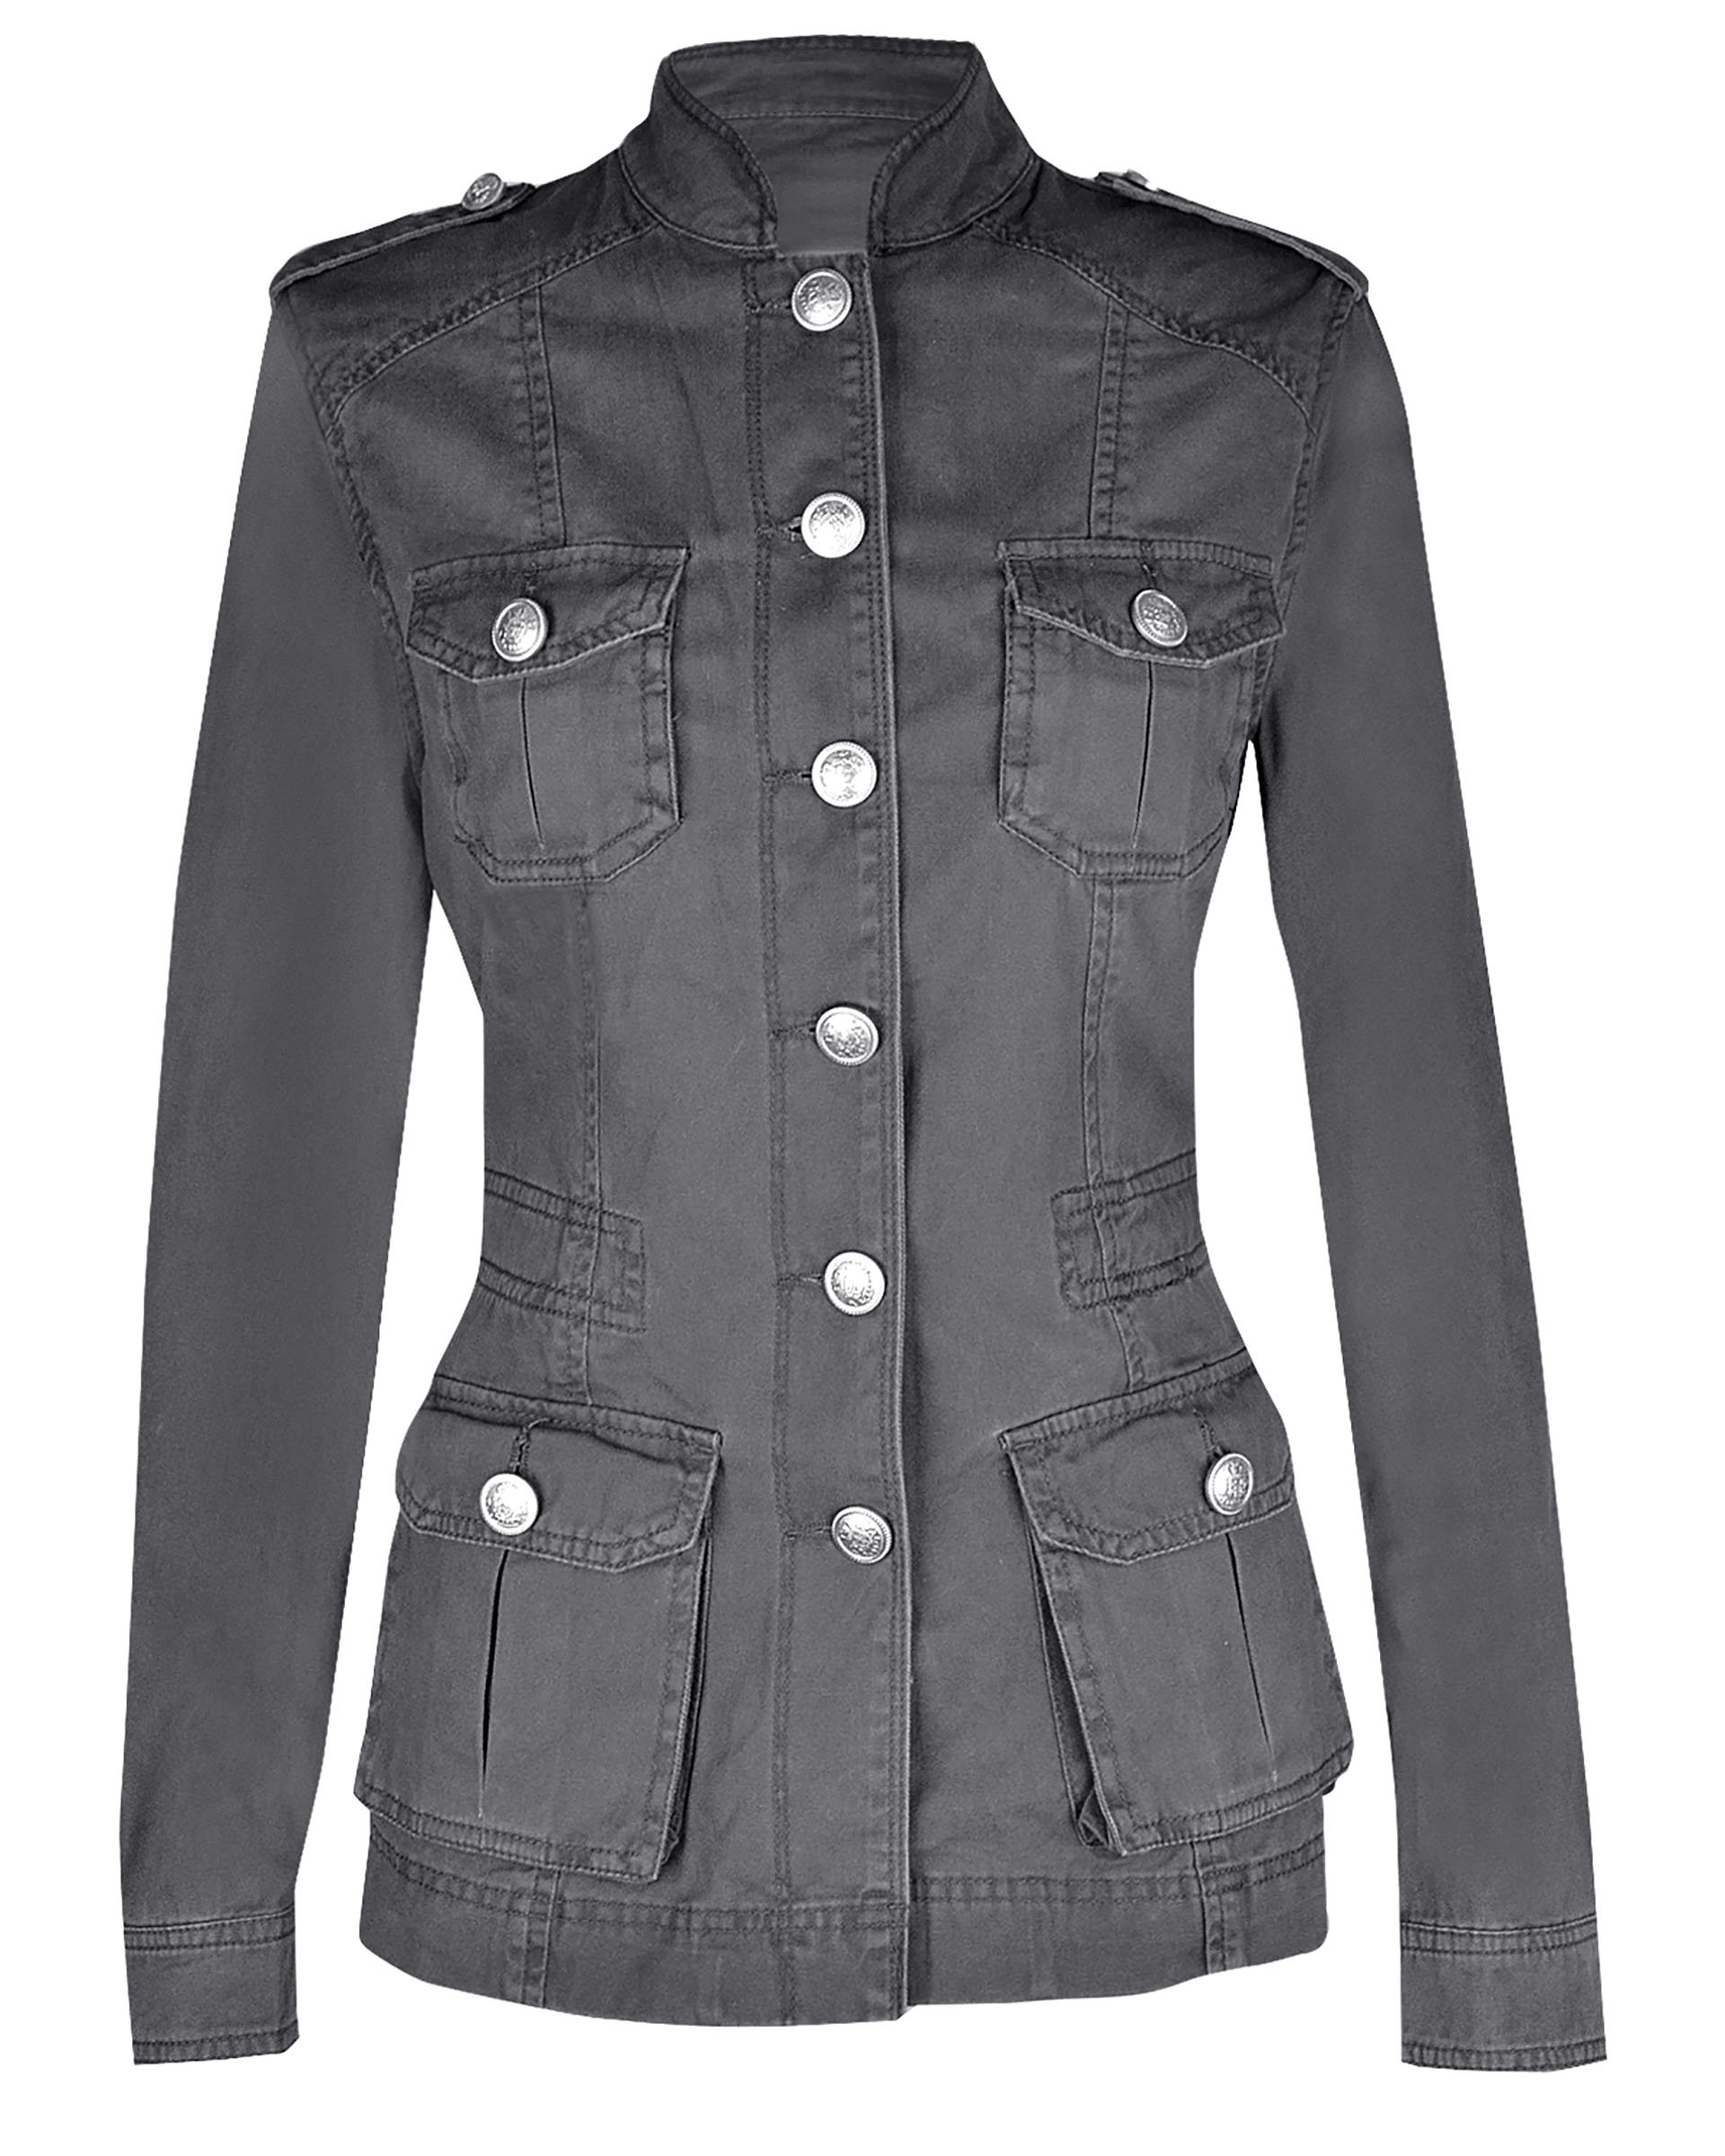 NOROZE Ladies Military Style Summer Jacket (12(UK 16), Silver Button Dark Grey)